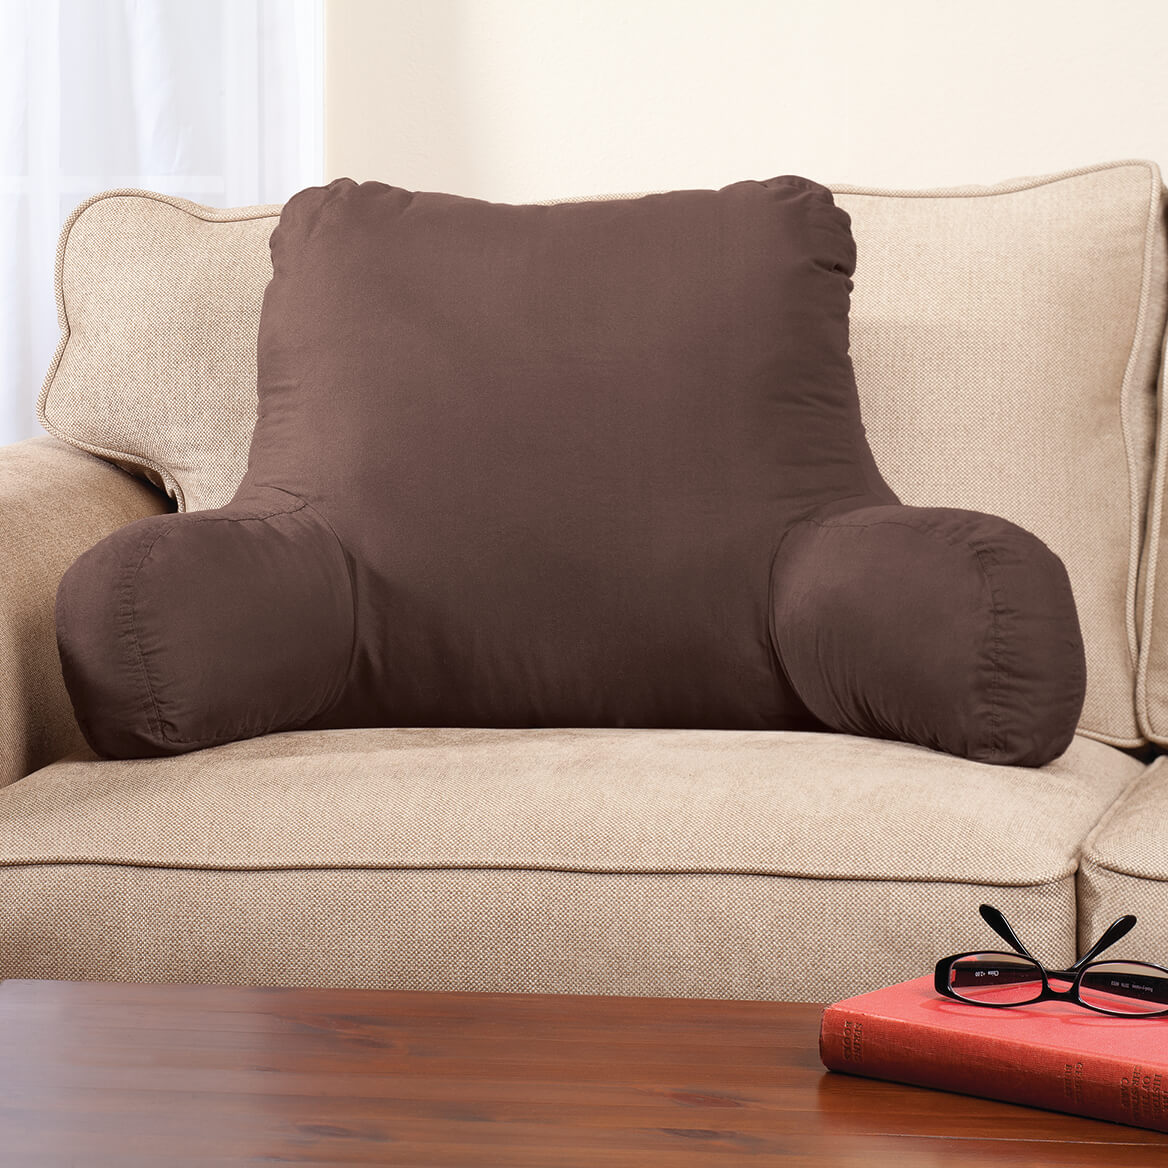 miles kimball backrest pillow with firm support arms 20 x 31 x 14 faux suede polyester brown fabric with dense foam interior for proper back